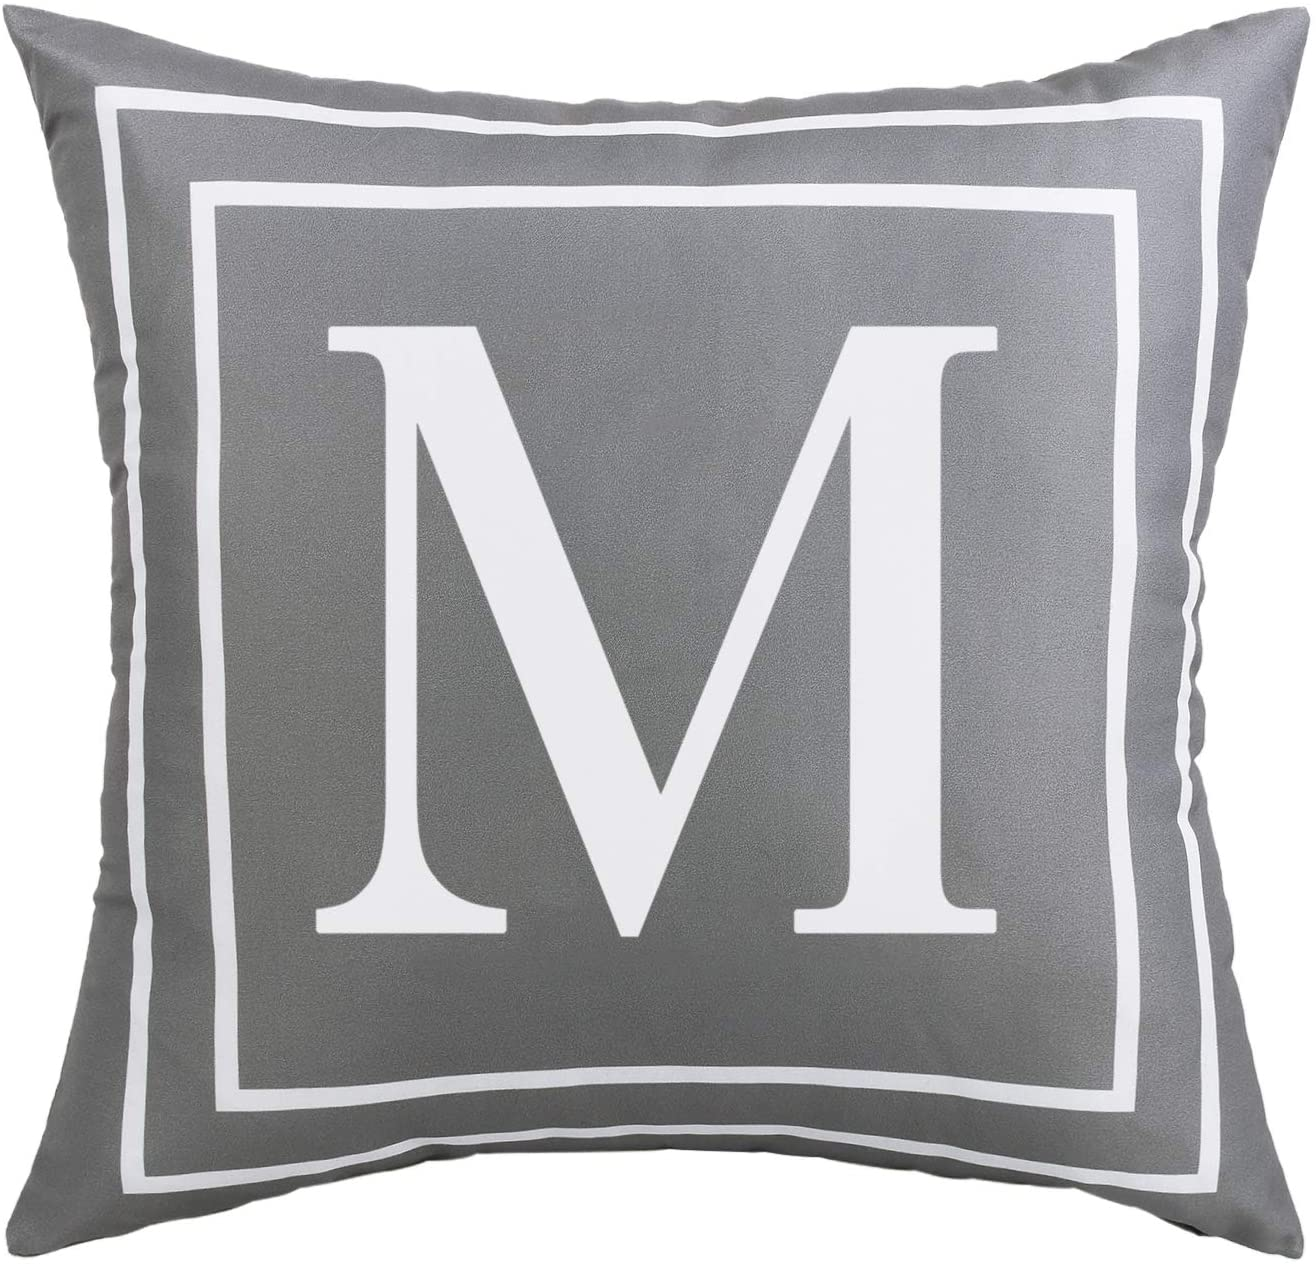 ASPMIZ Throw Pillow Covers English Alphabet M Pillow Covers Gray Pillowcases Initial Throw Pillow Covers Decorative Cushion Cover for Bed Bedroom Couch Sofa (Gray, 20 x 20 inch)